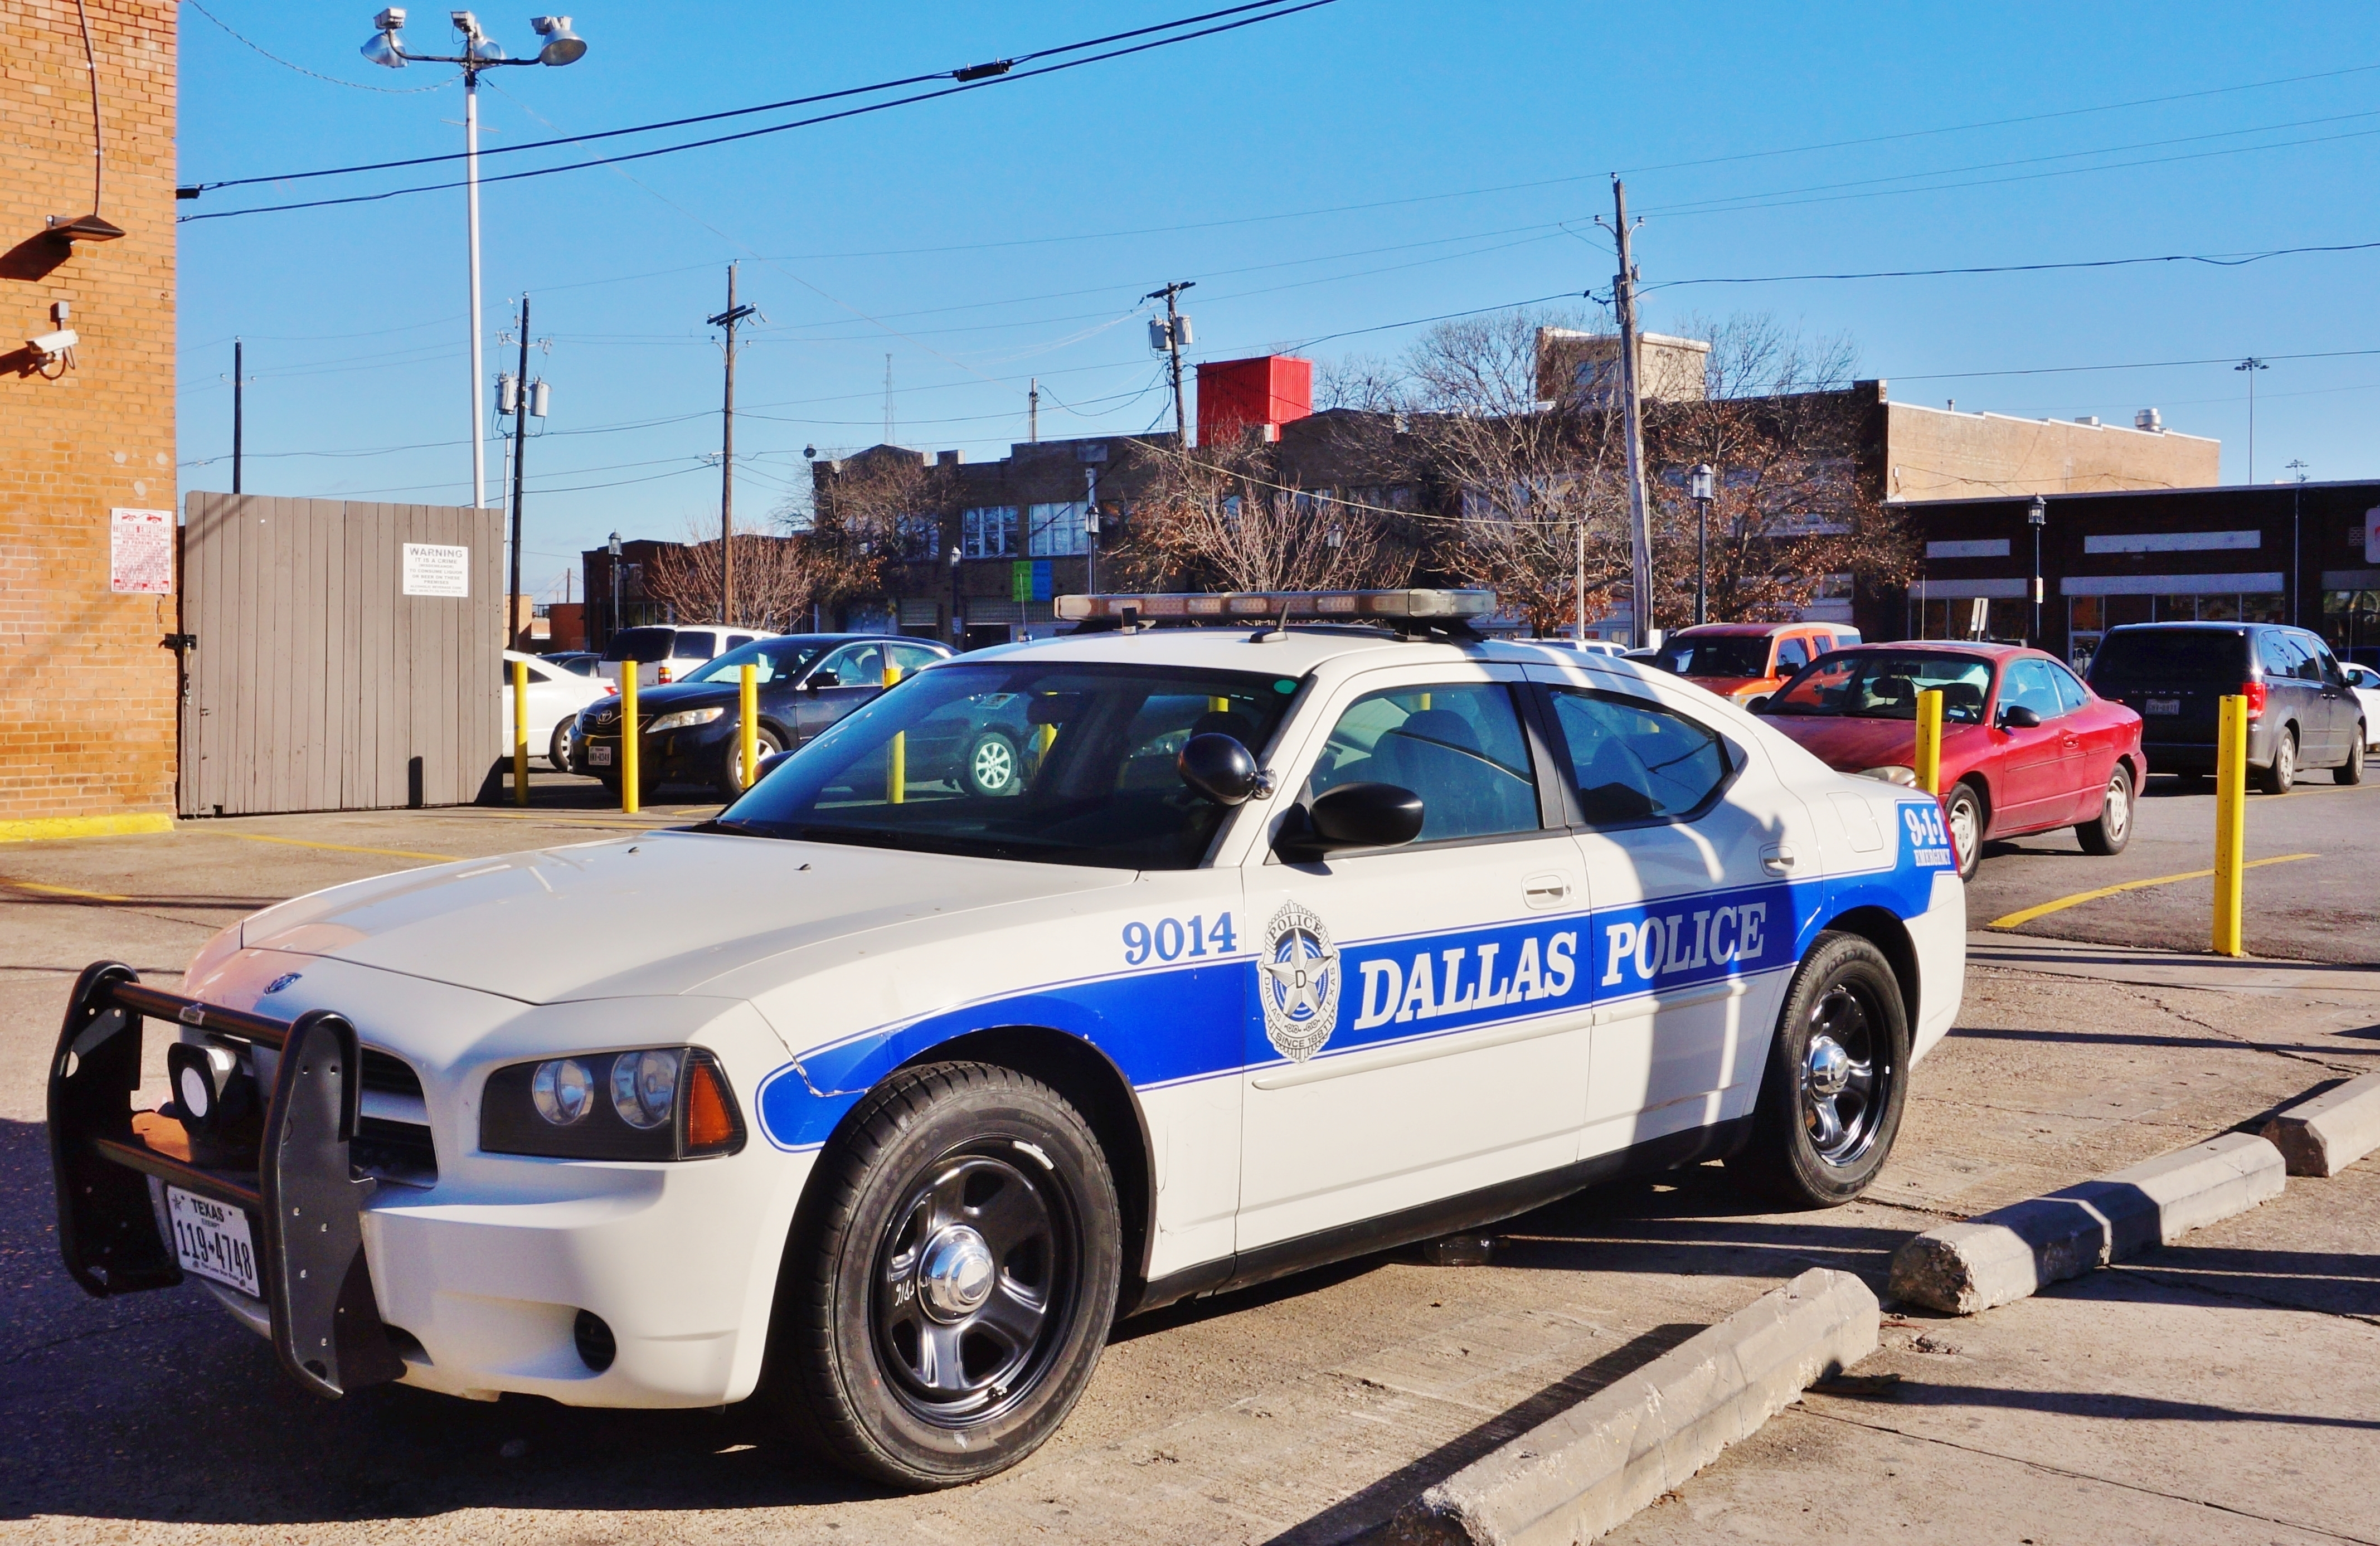 Dallas Police. Shutterstock image by EQRoy